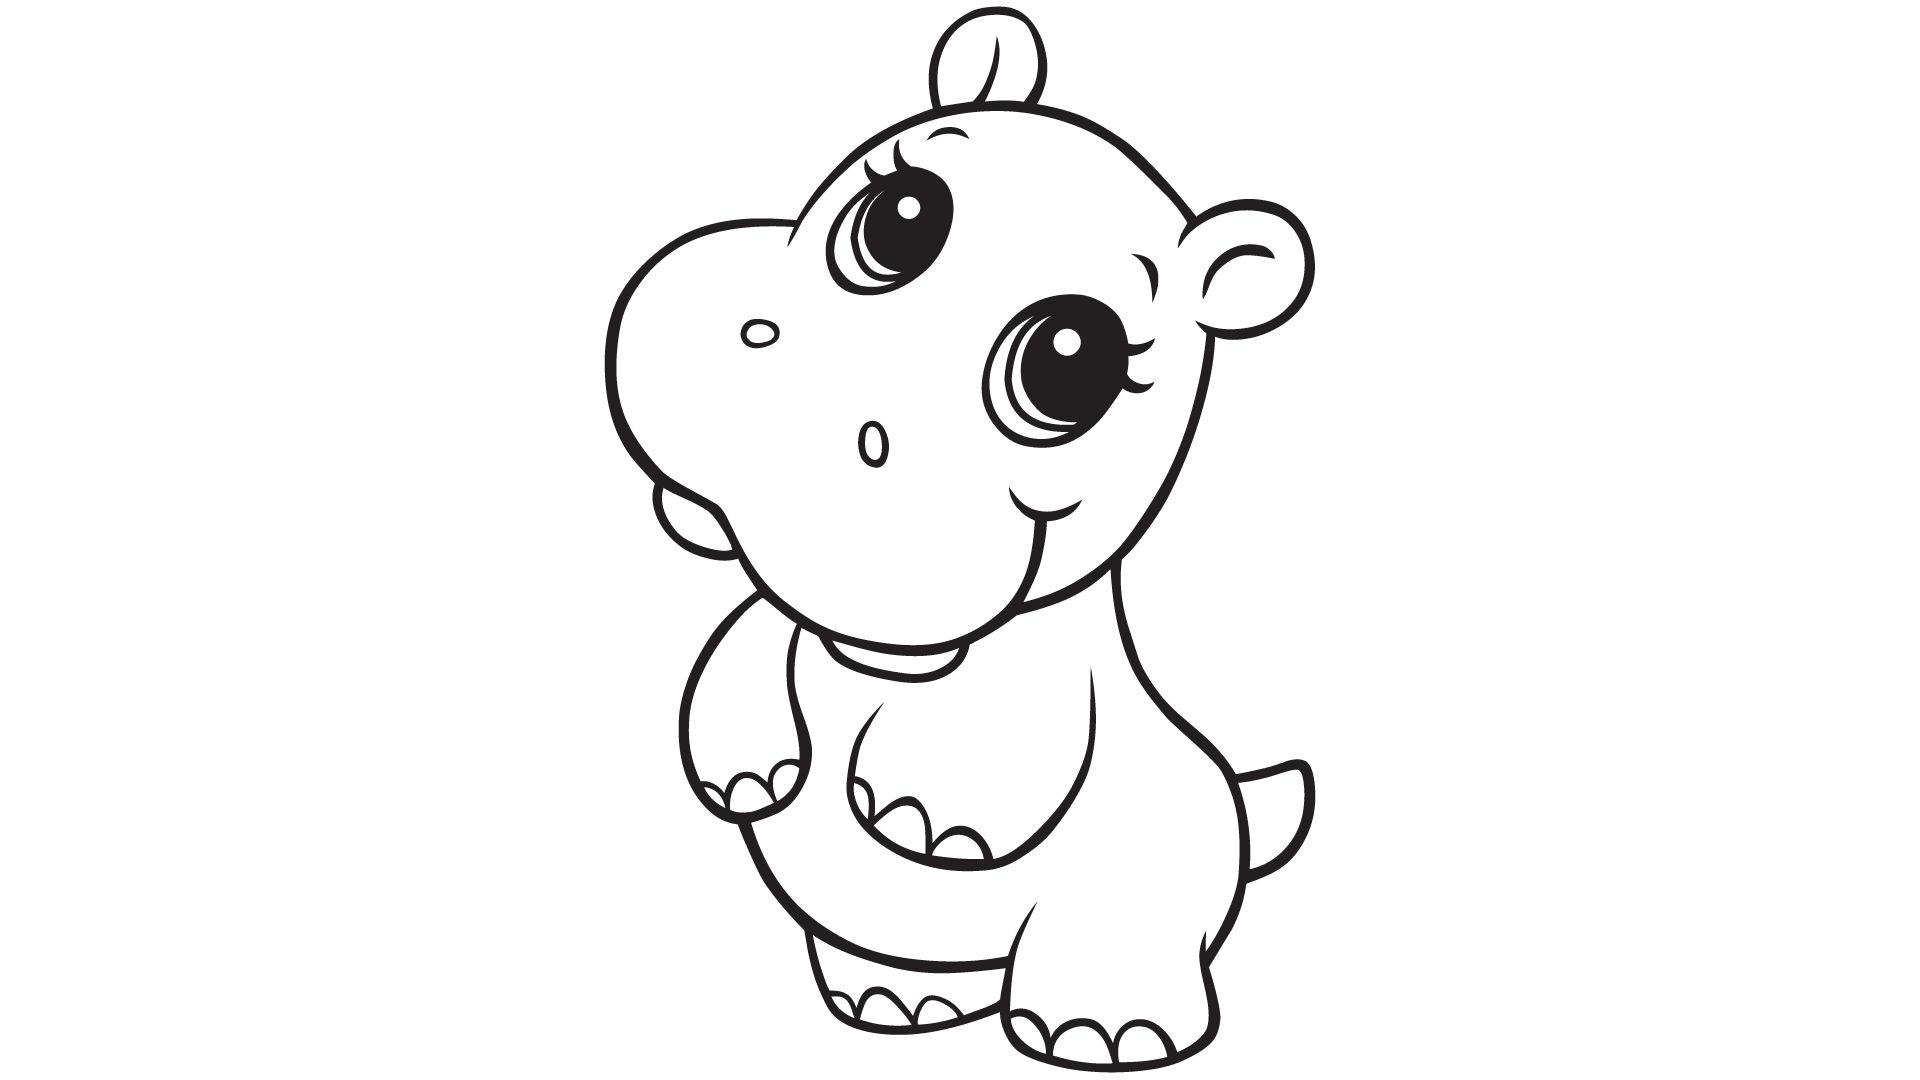 hippo coloring page,printable,coloring pages